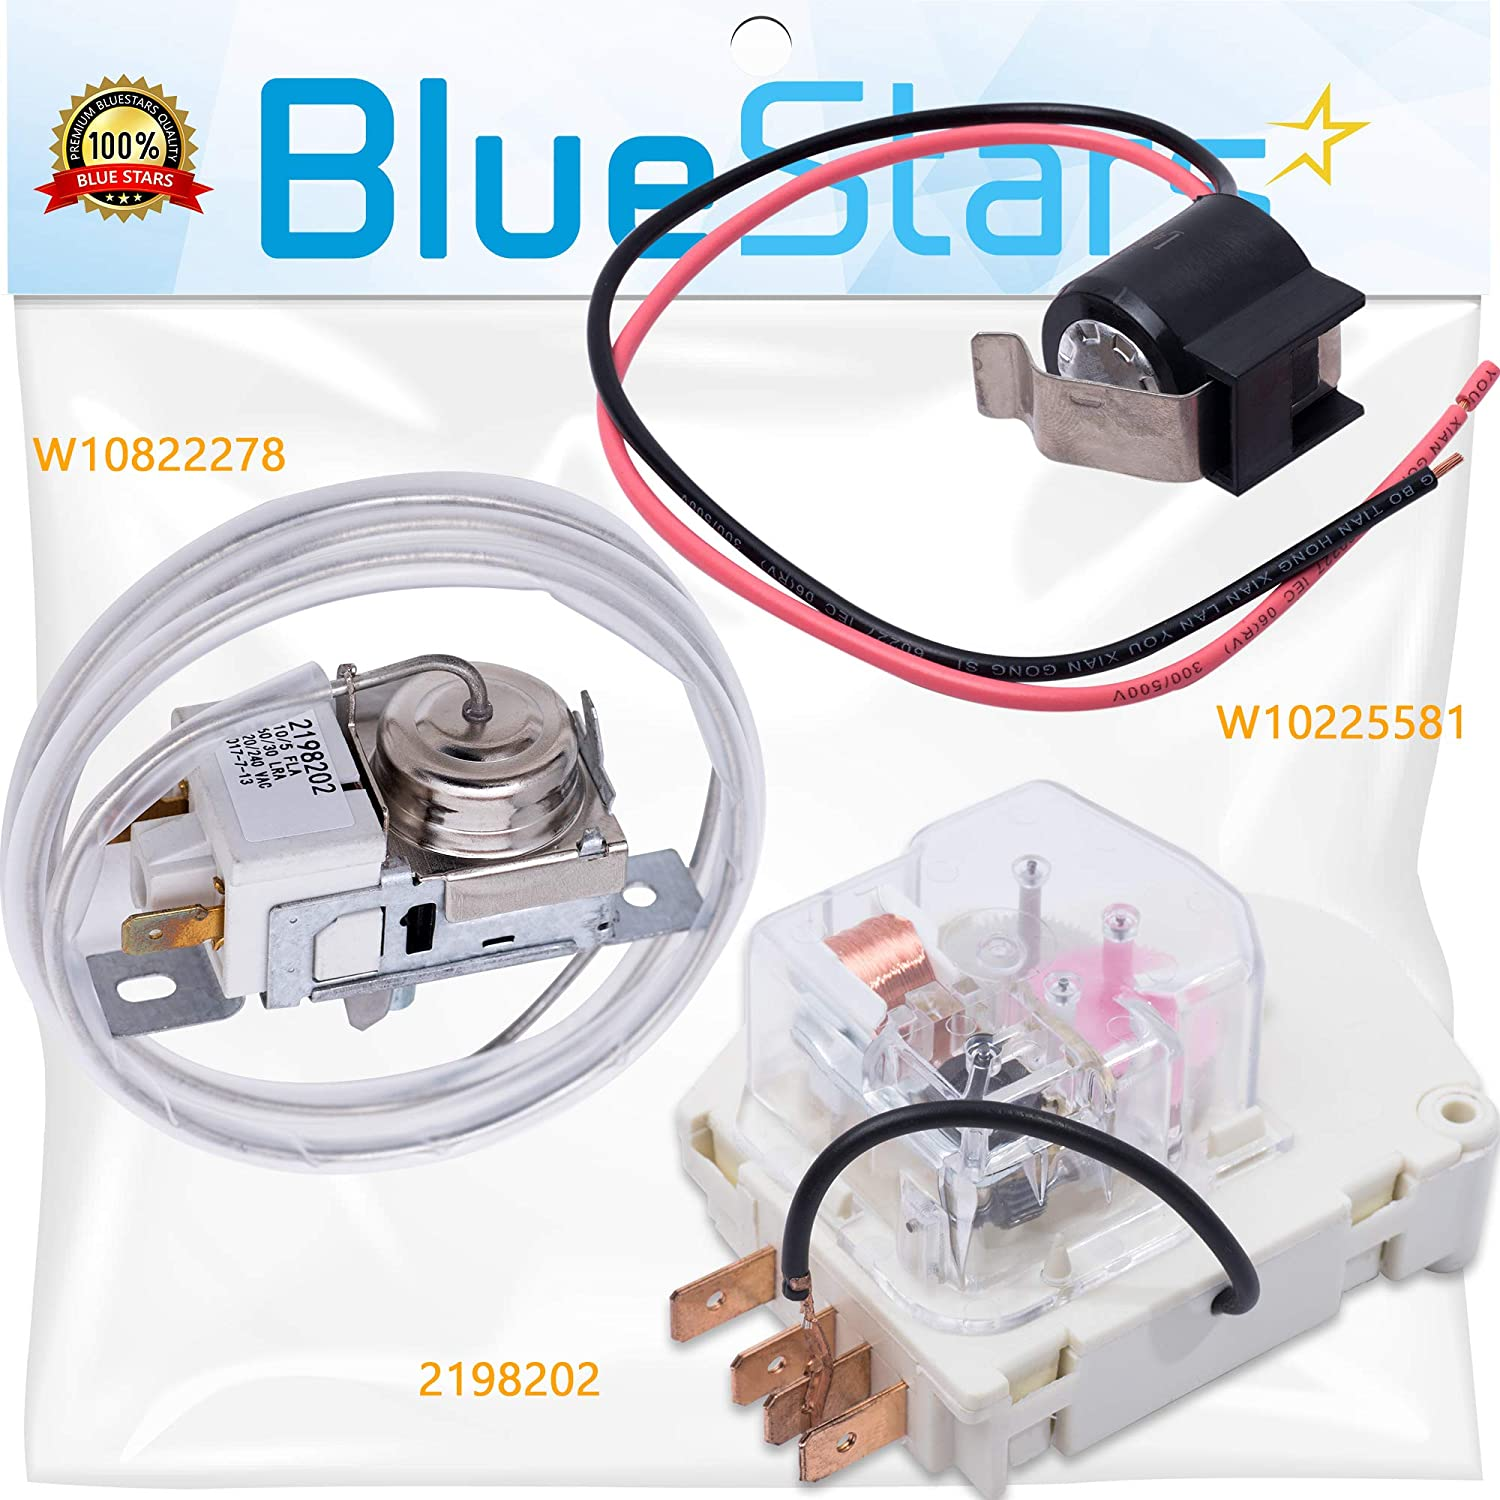 4 Pack Refrigerator Defrost Thermostat For Whirlpool KitchenAid W10225581